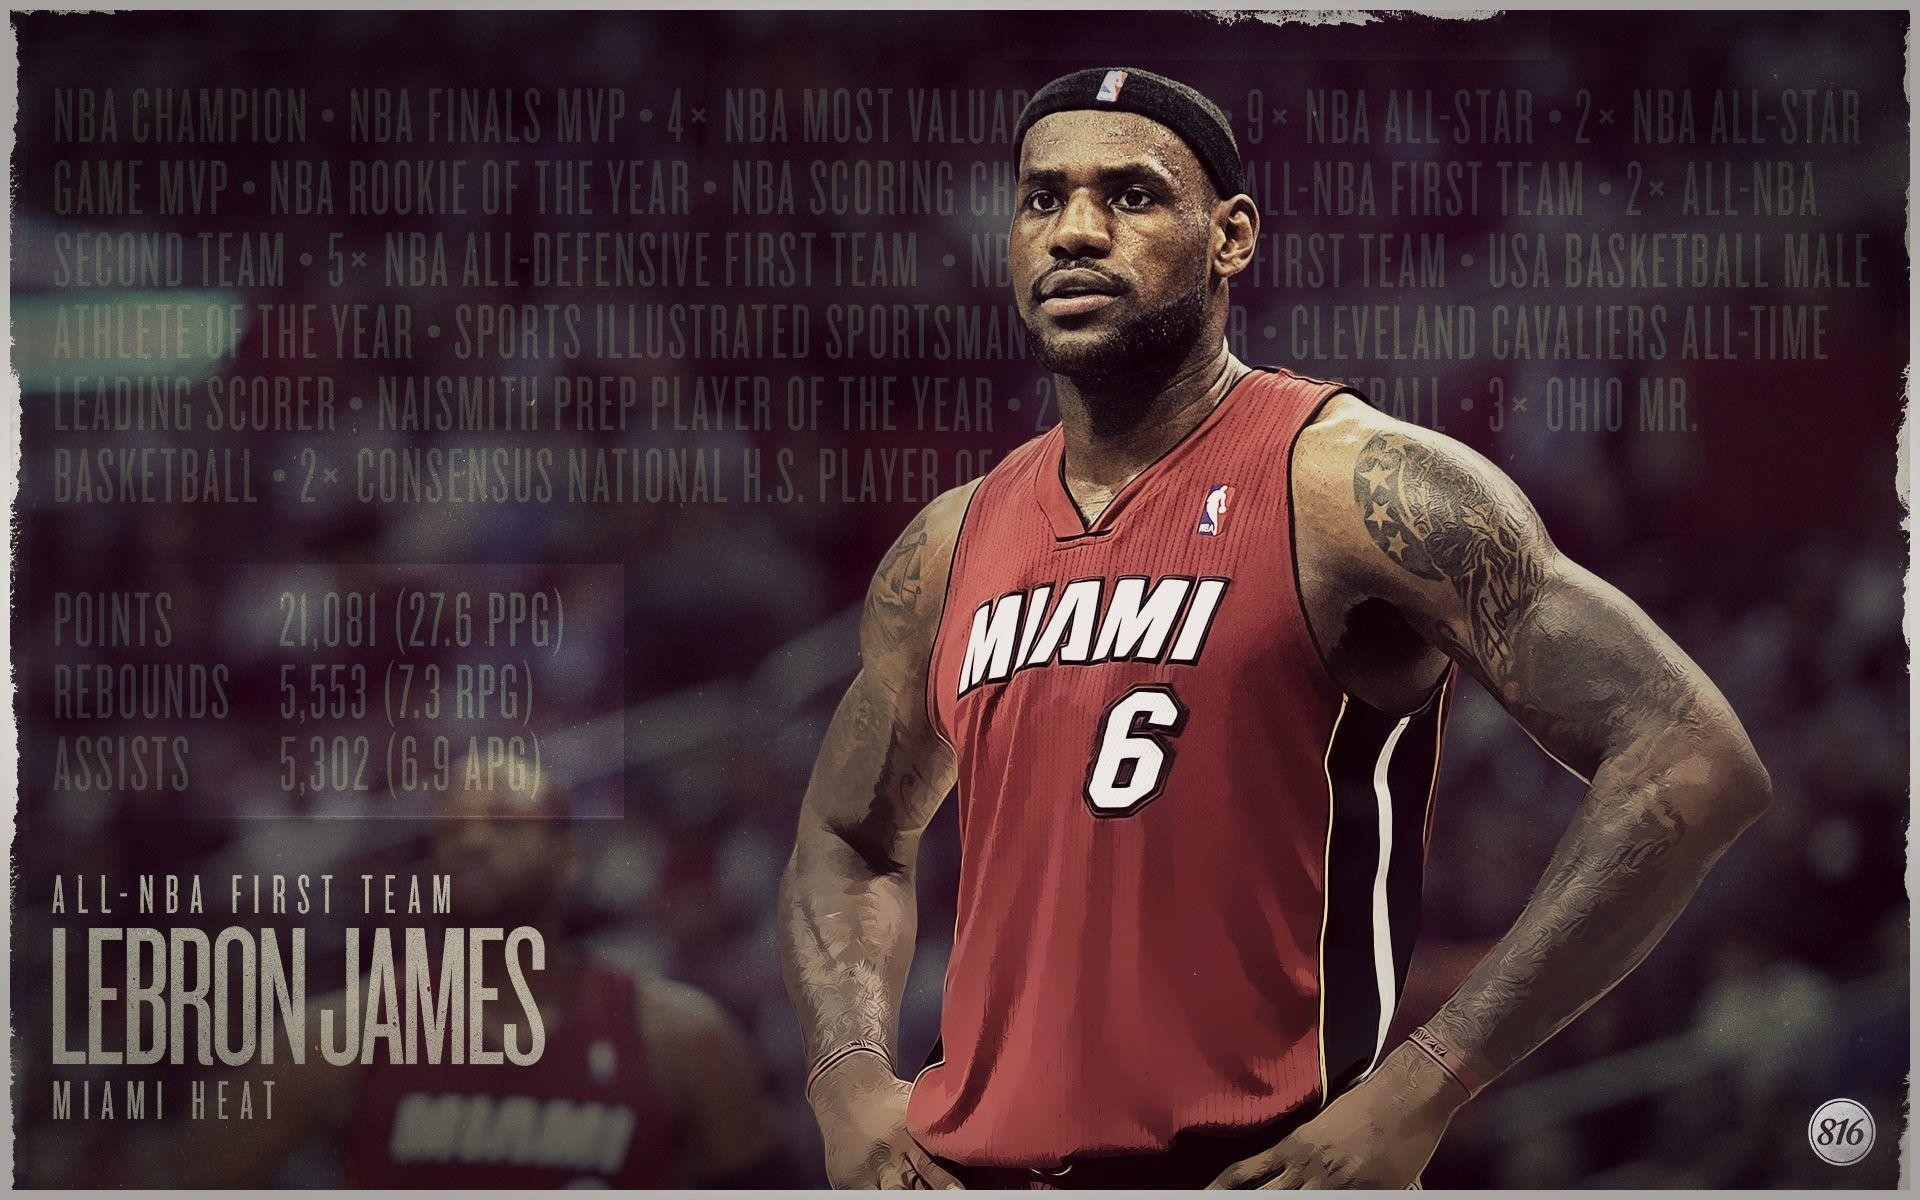 1920x1200 Download HD Pics 2015 Lebron James Wallpaper | HD Wallpapers & HQ .